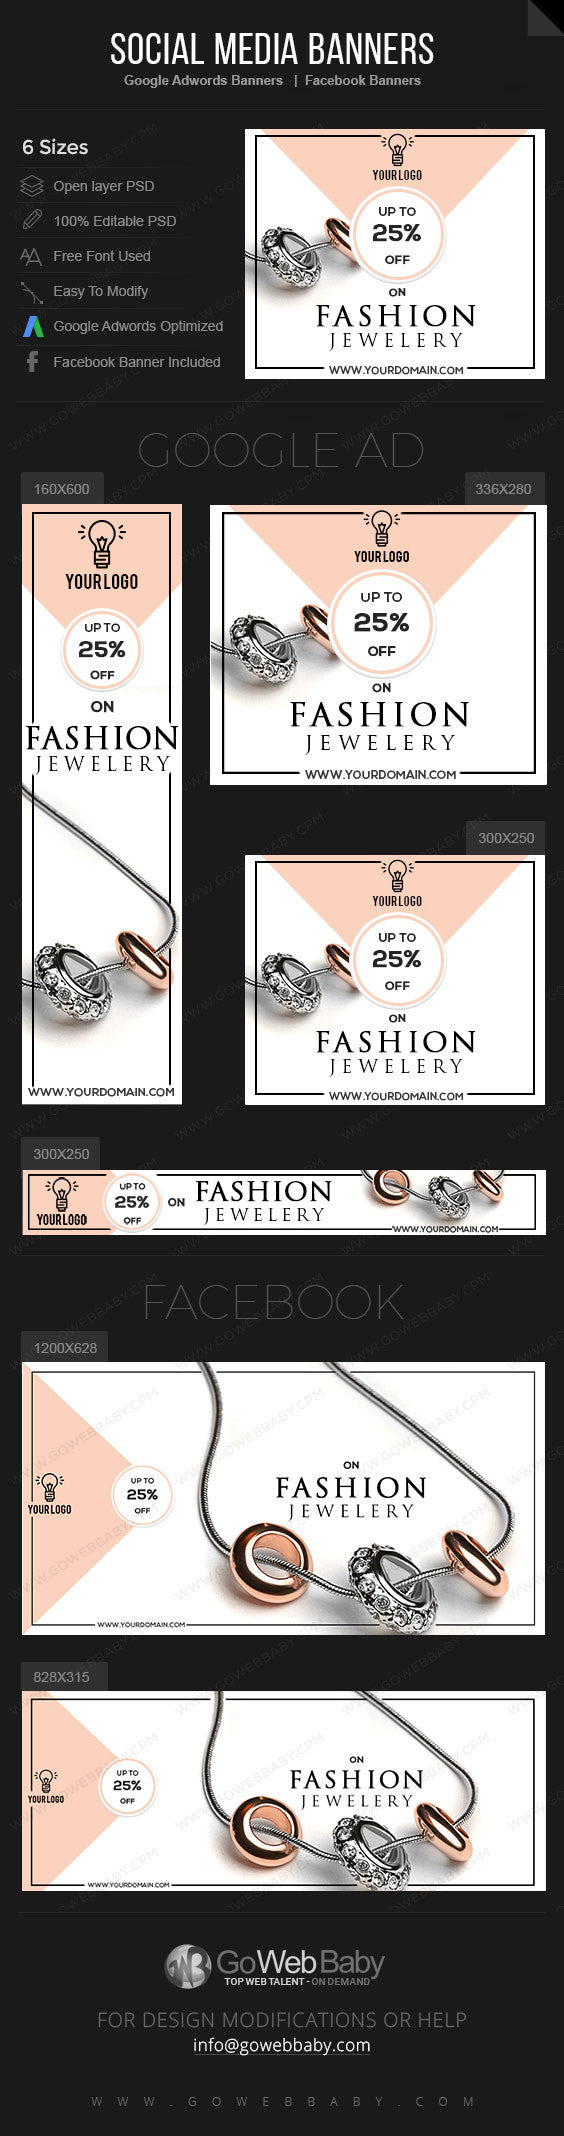 Google Adwords Display Banner with Facebook banners - Fashion Jewelry for Website Marketing - GoWebBaby.Com